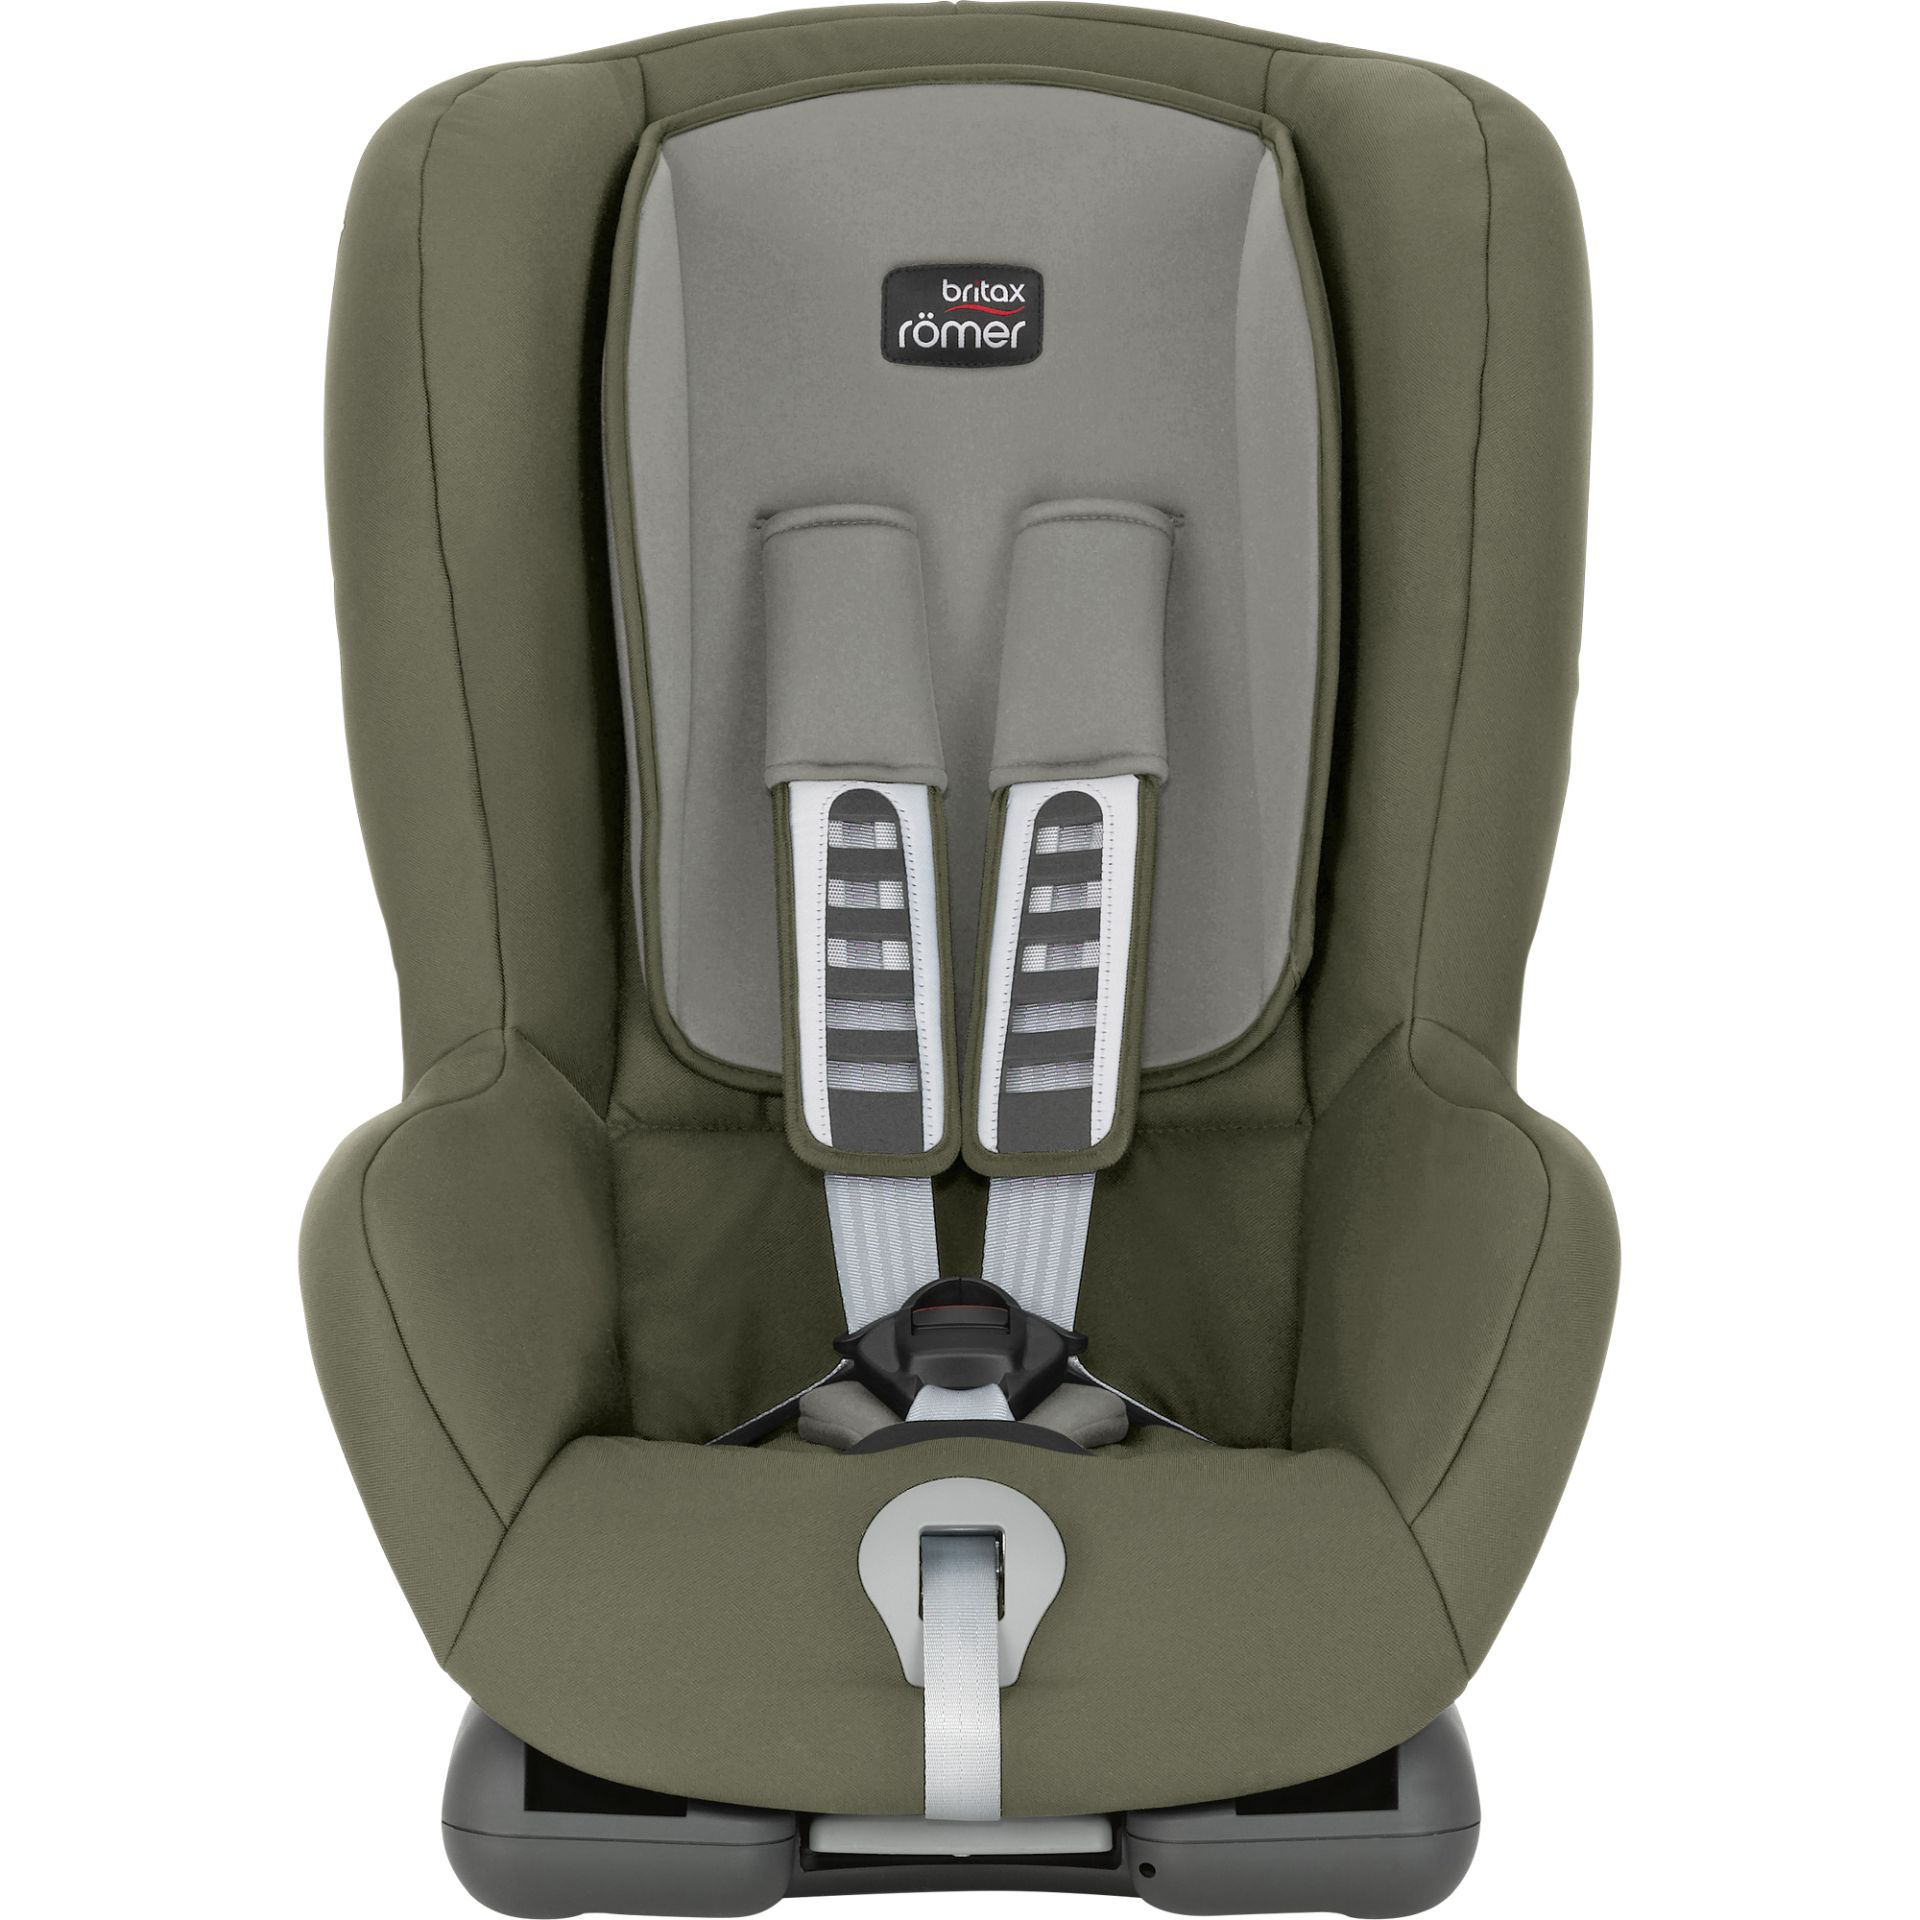 britax r mer car seat duo plus 2018 olive green buy at kidsroom car seats isofix child car. Black Bedroom Furniture Sets. Home Design Ideas